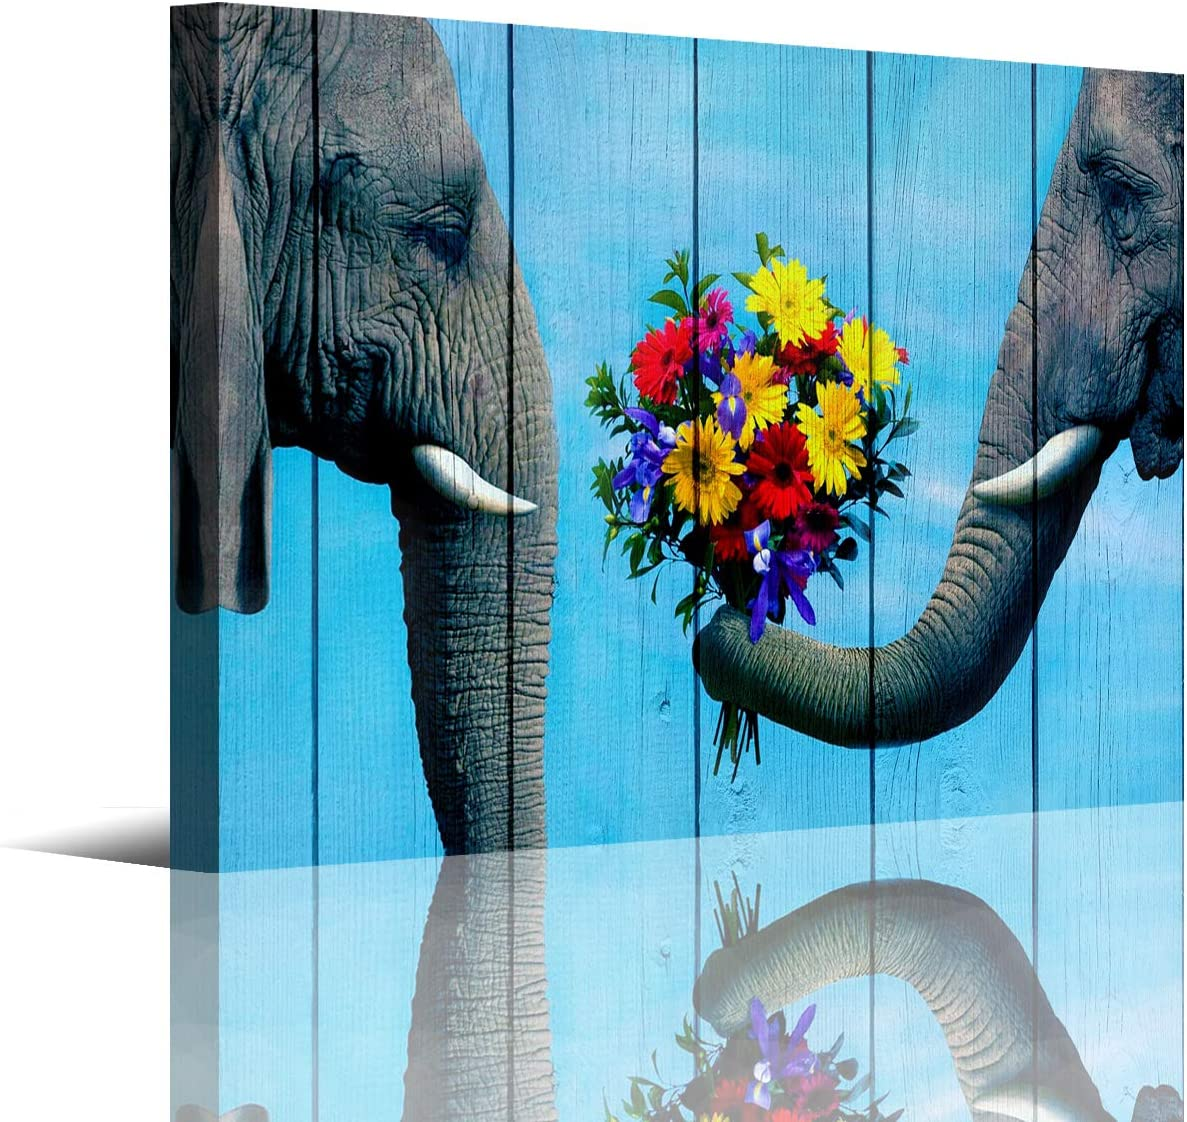 Bathroom Canvas Wall Art Artwork Animal Elephant Prints Wall Decor for Living Room Bedroom.The Elephant Sends Flowers to His Lover,Elephant on Wood Background,Stretched Ready to Hang,Size 12x16inches.